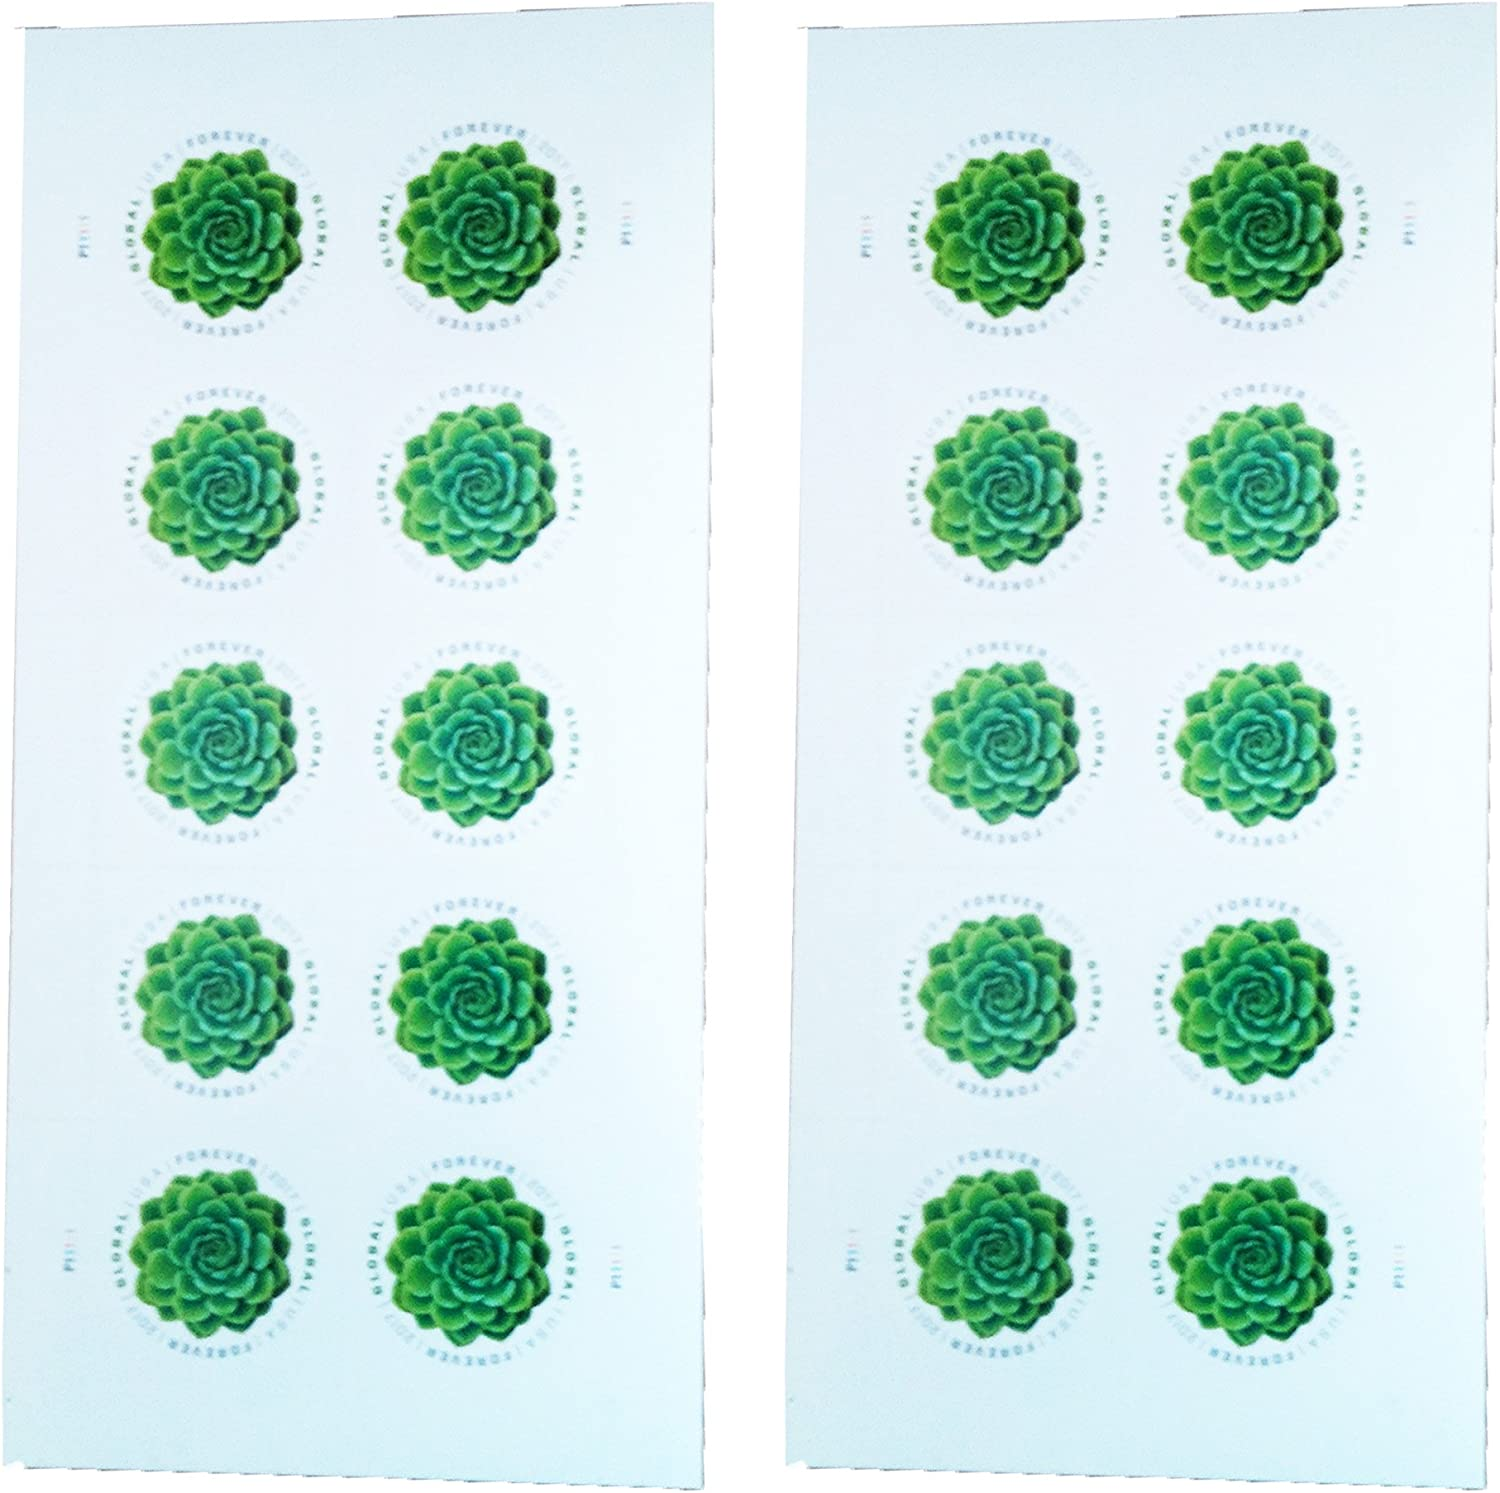 Green Succulent Sheet of 10 Global USPS First Class International Forever Postage Stamps (2)